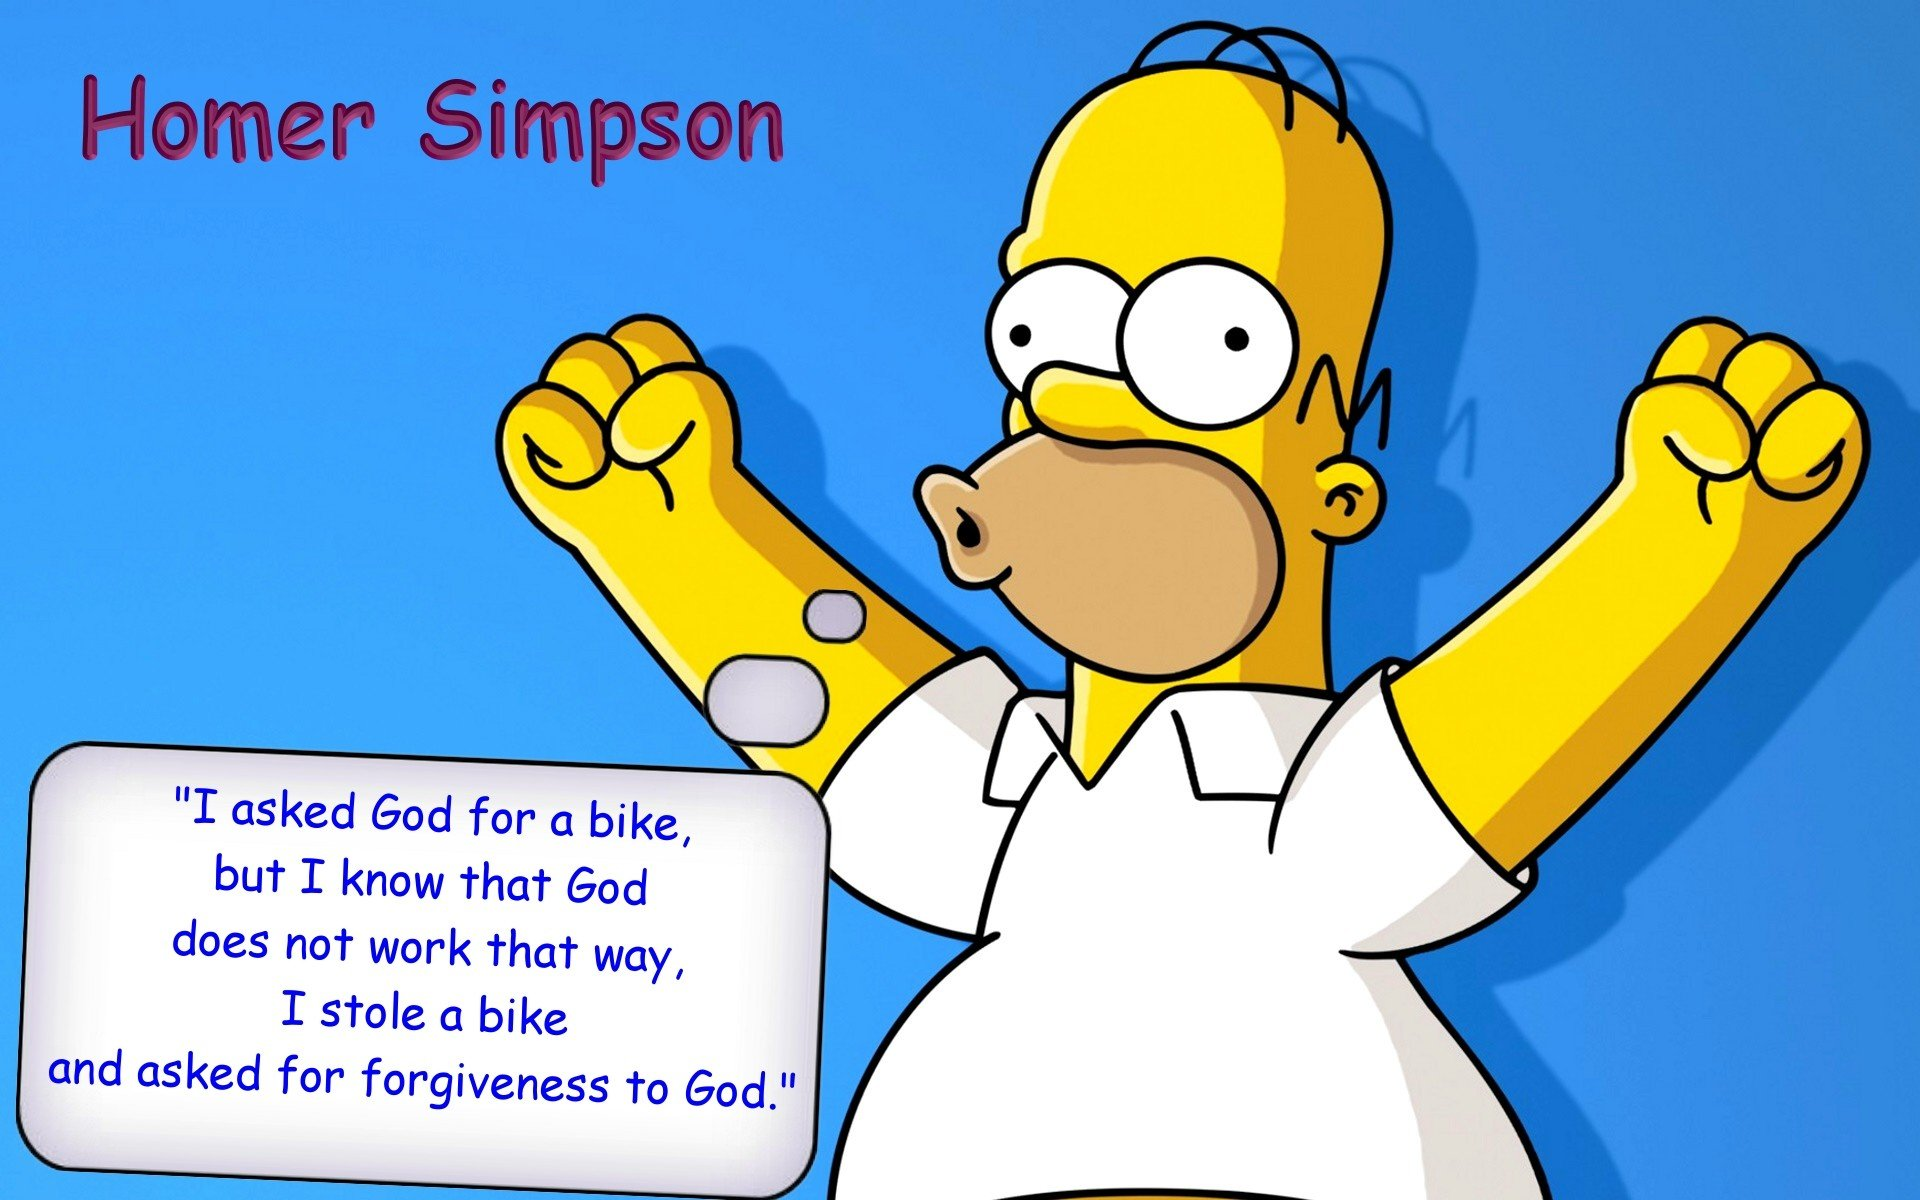 the simpsons homer: